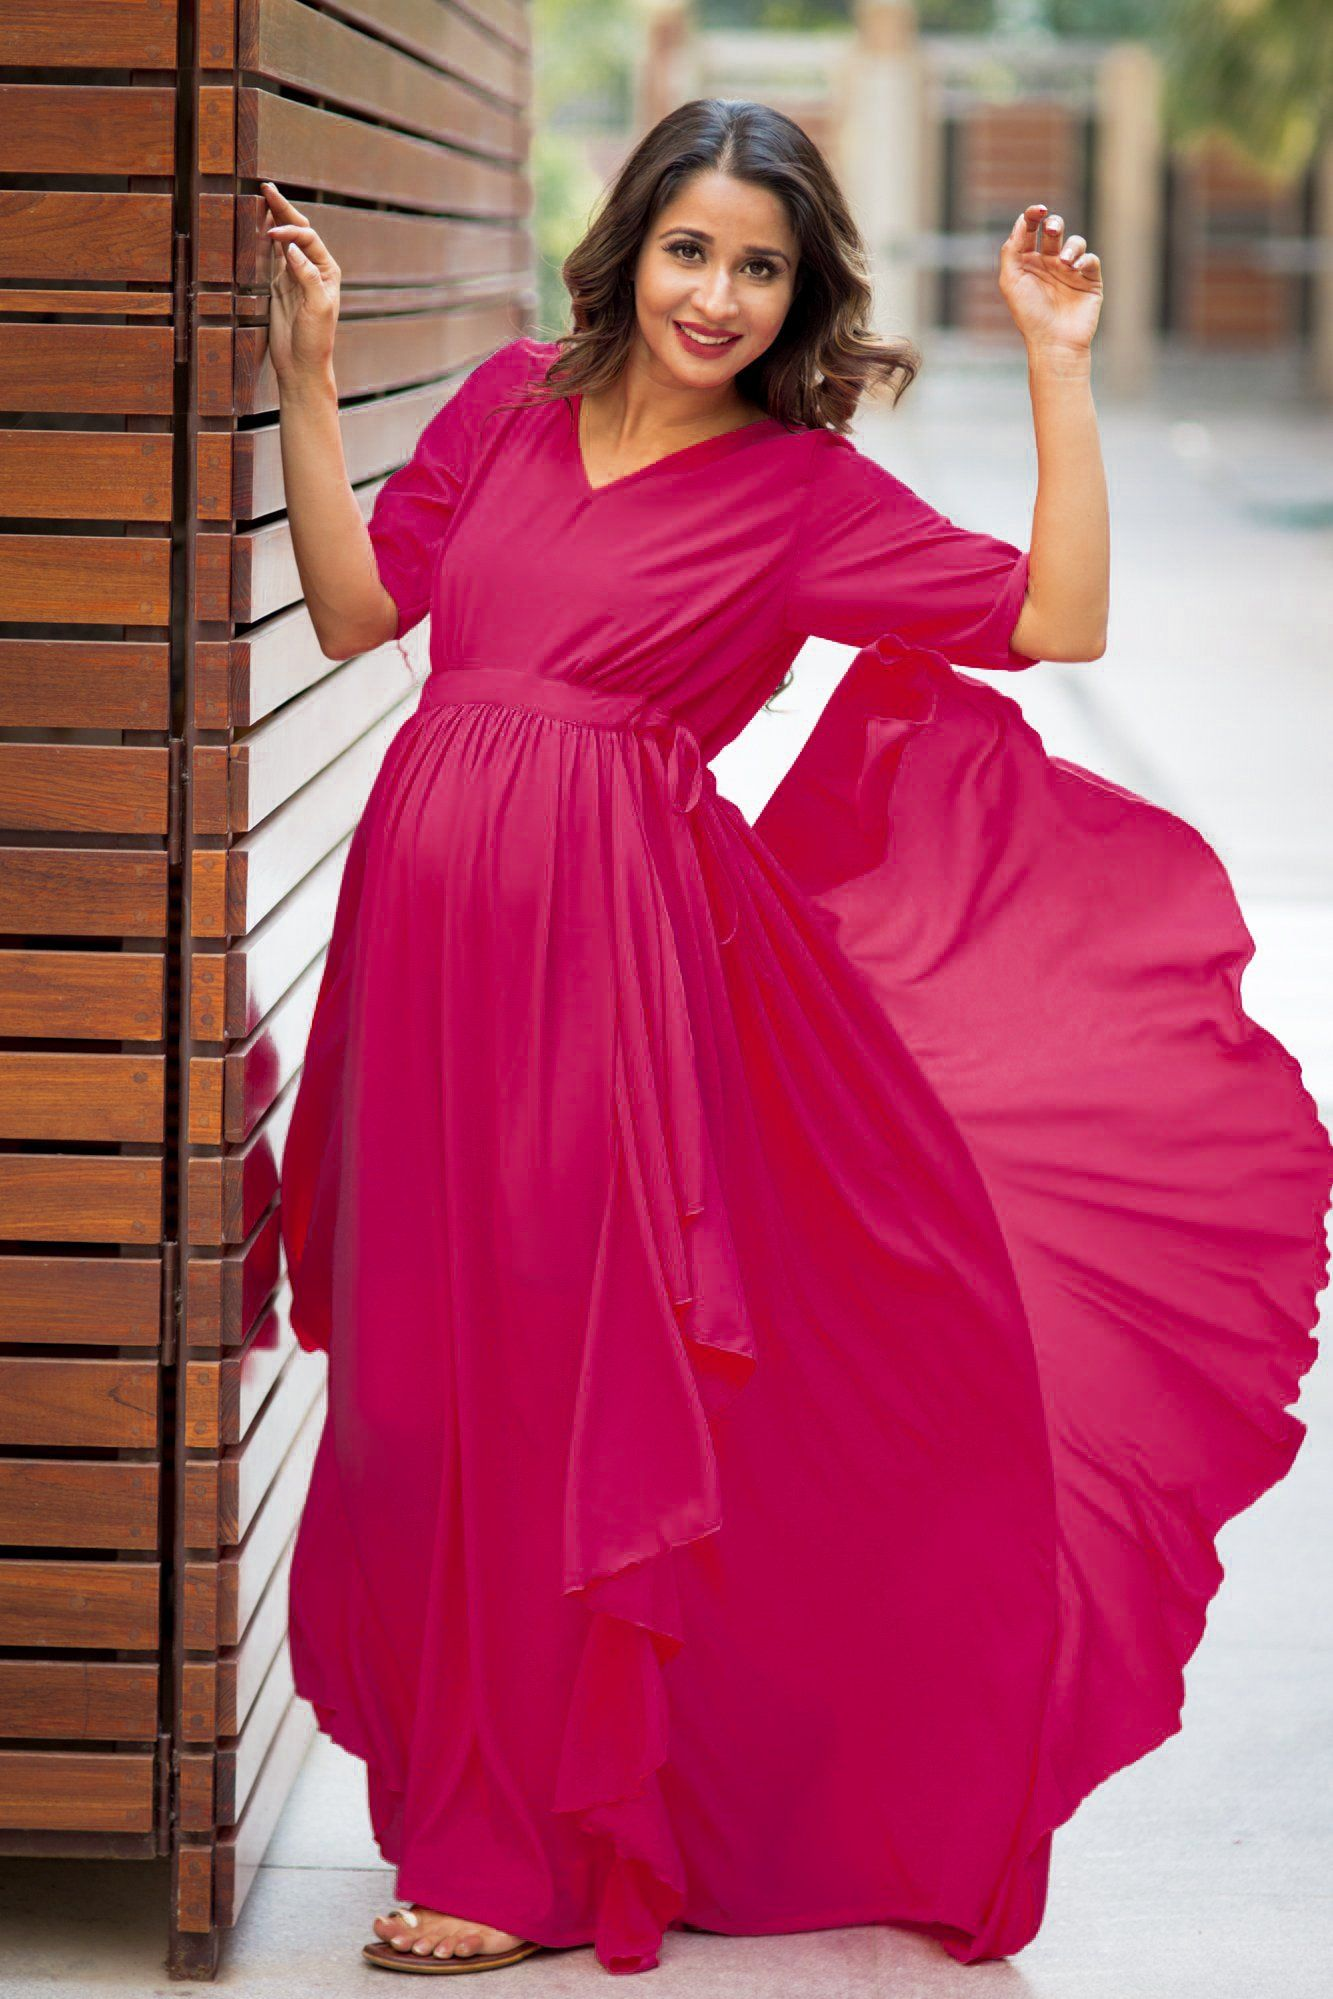 Buy online momzjoy maternity dresses pregnancy wear nursing clothes luxe deep pink blush bubble georgette maternity dress ombrellifo Images